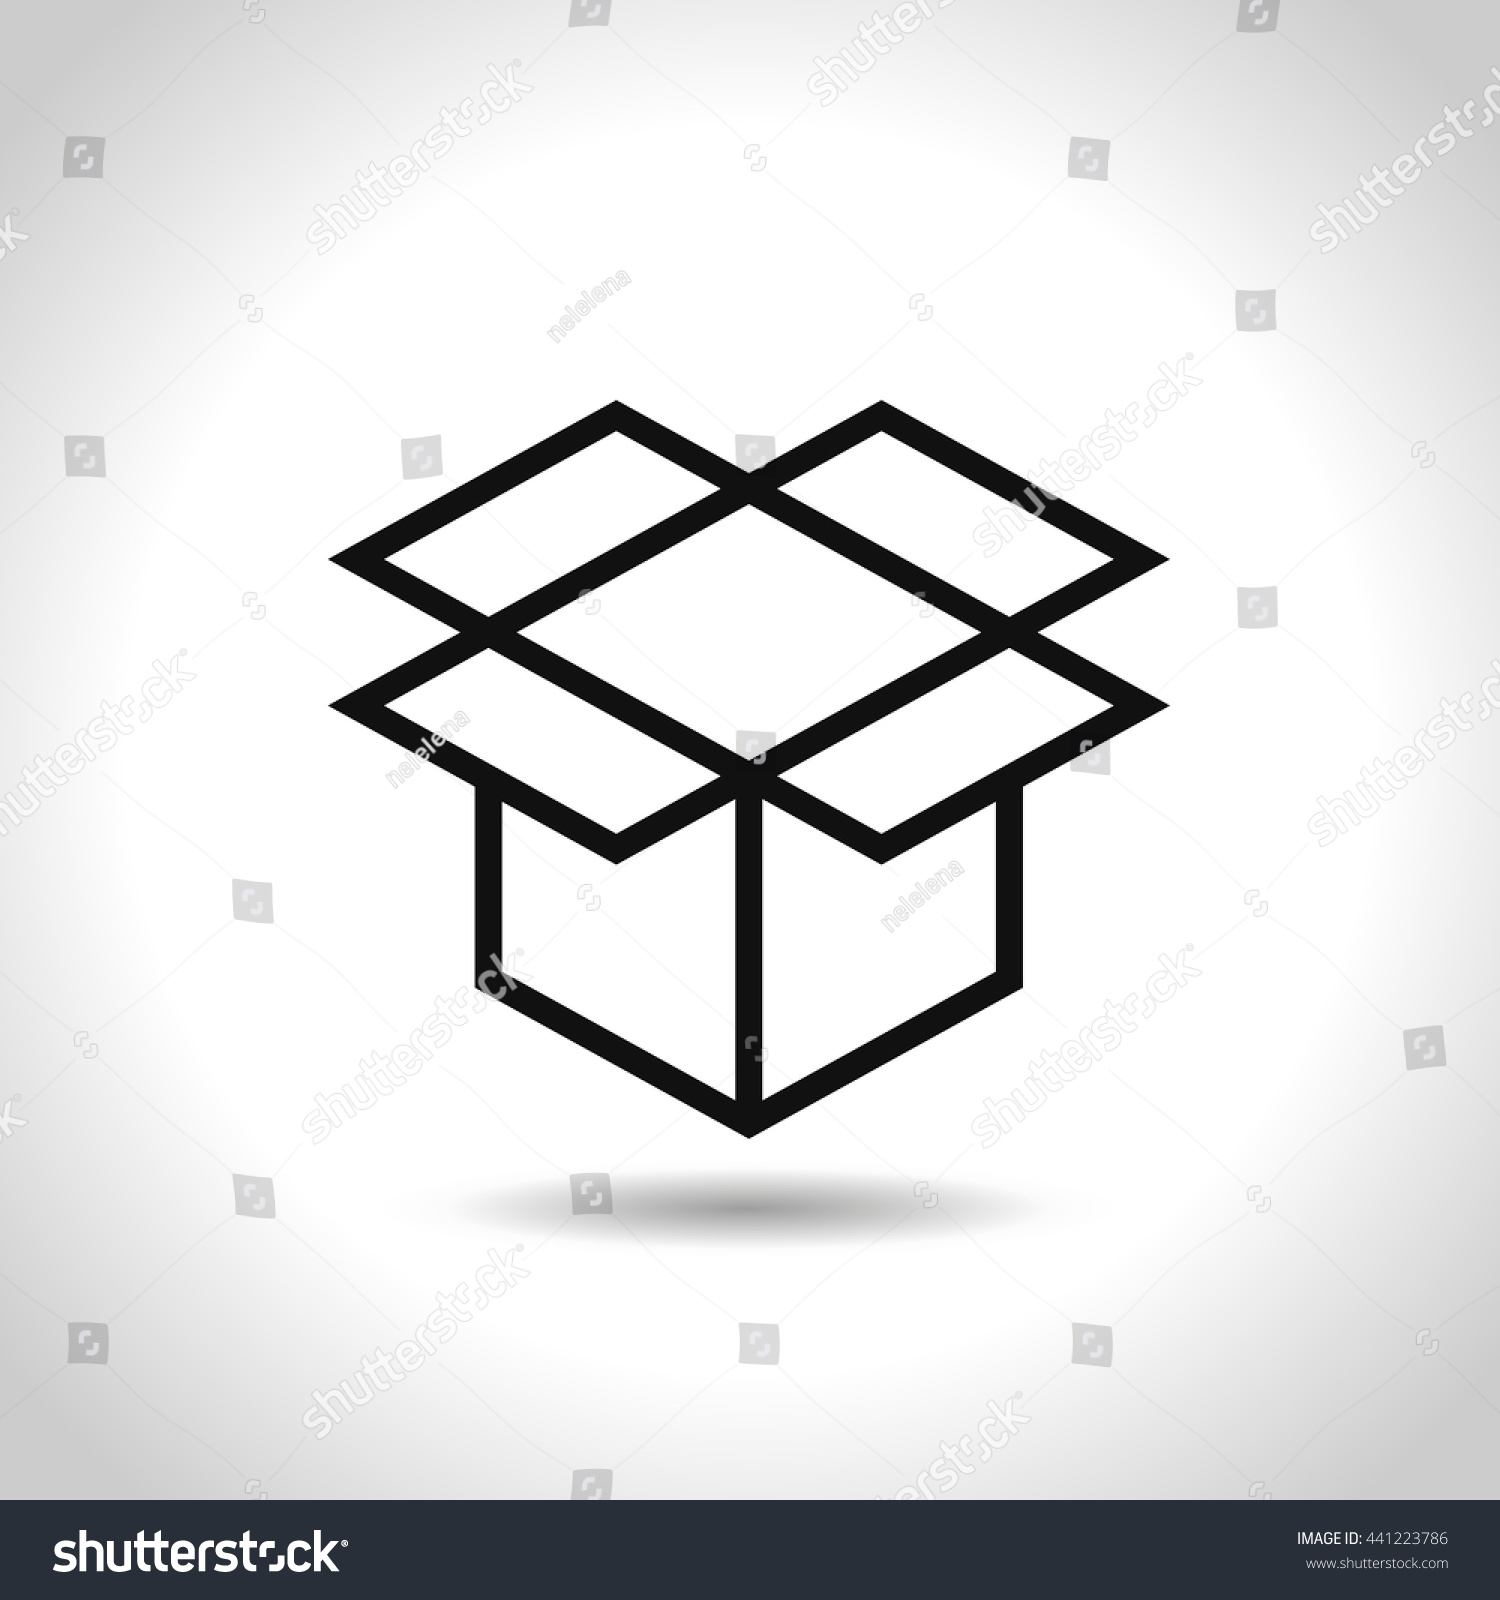 Open box symbol symbol packaging eps stock vector 441223786 open box symbol symbol of packaging eps vector illustration biocorpaavc Choice Image